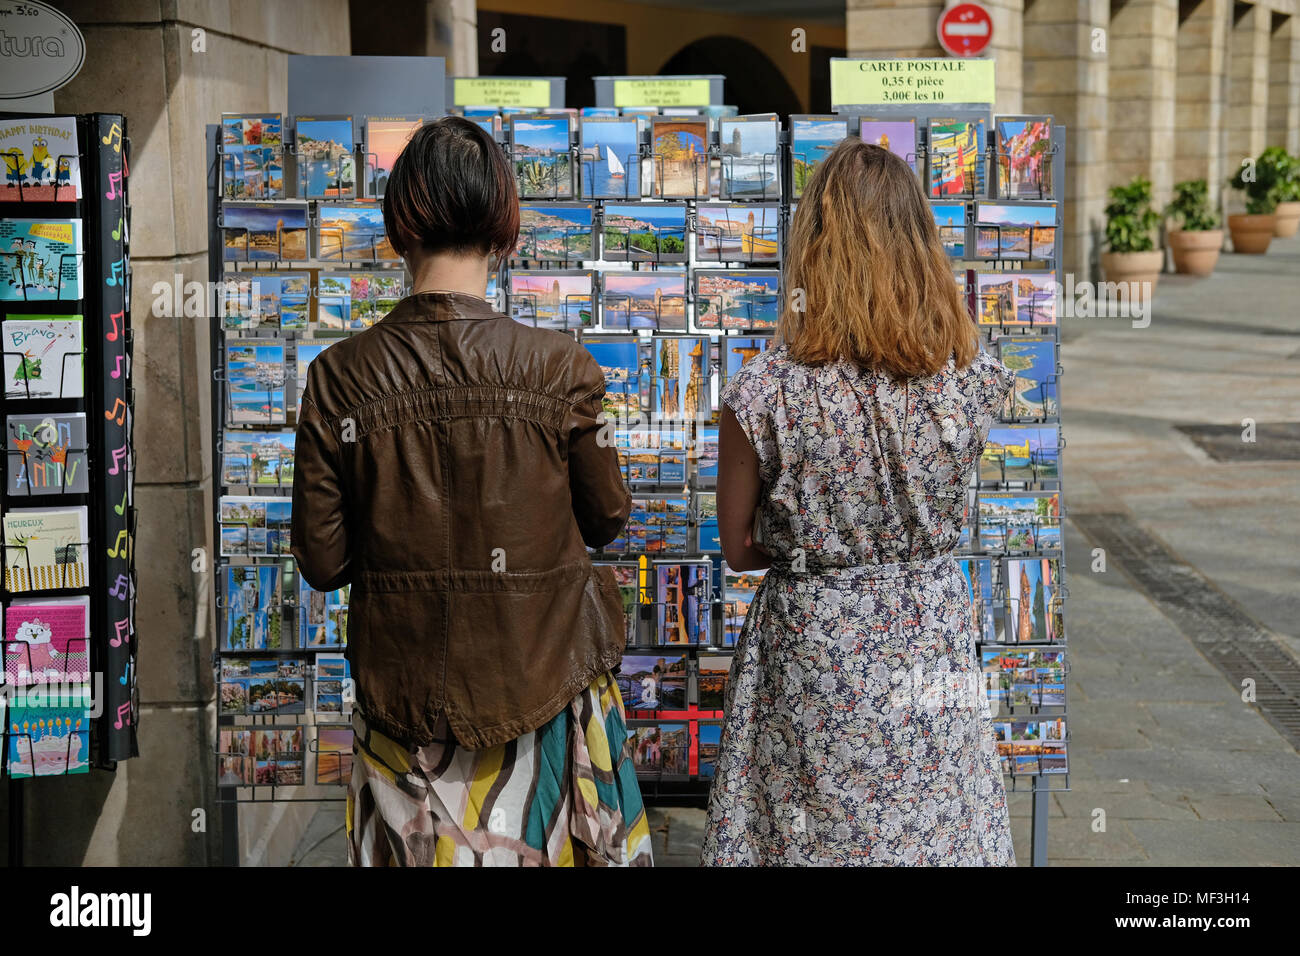 Buying postcards in France - Stock Image